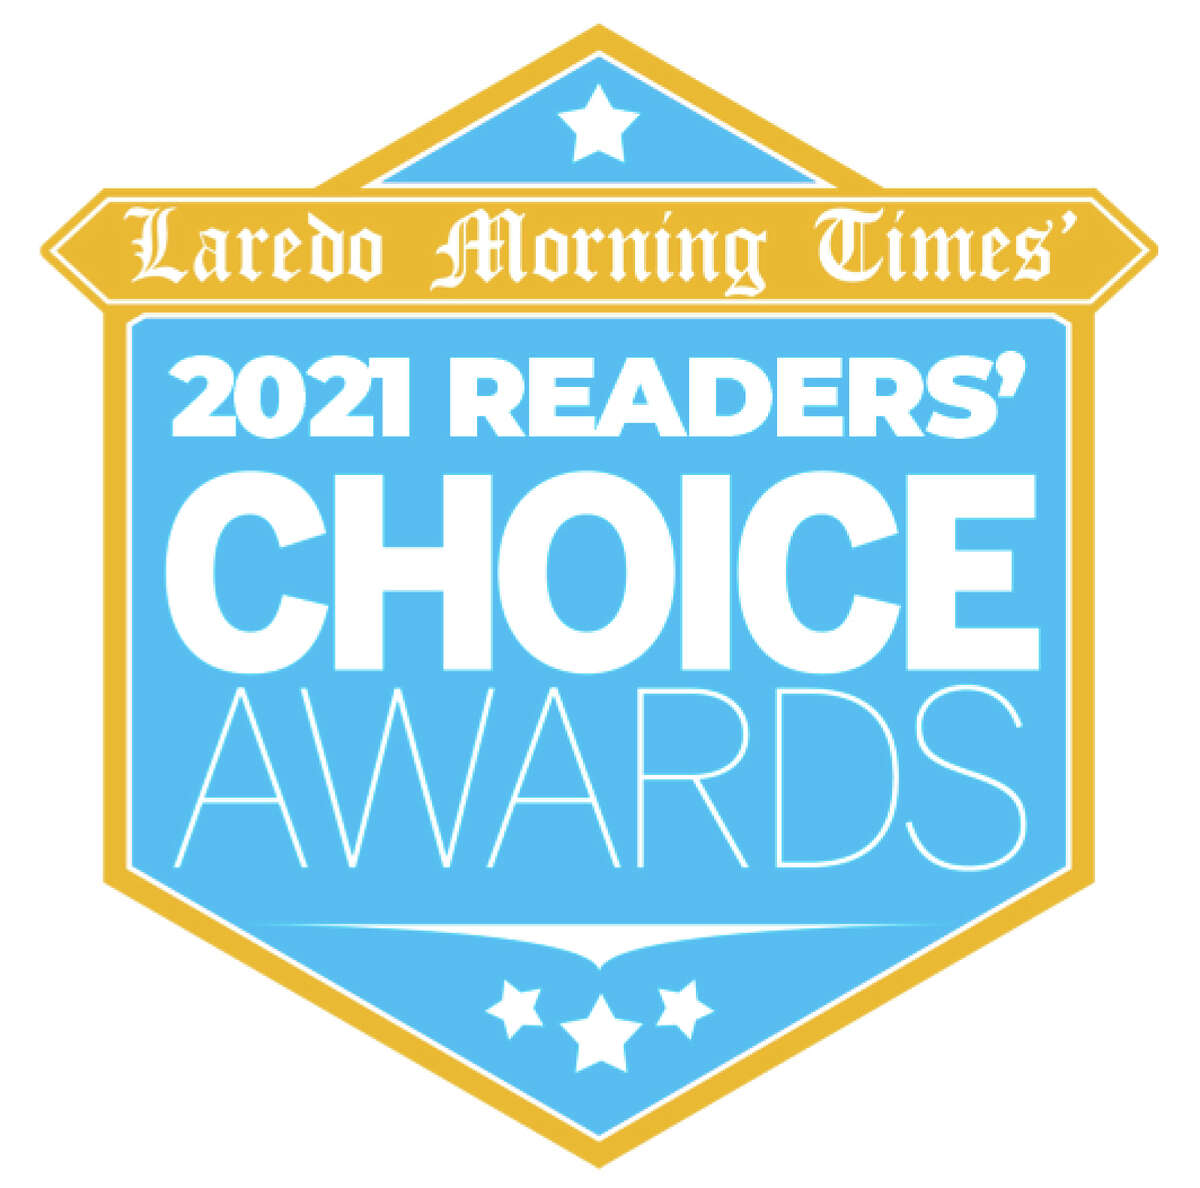 The Laredo Morning Times is inviting our readers once again to decide the best of the best in dining, entertainment, retail and more in our 2021 Readers' Choice Awards.